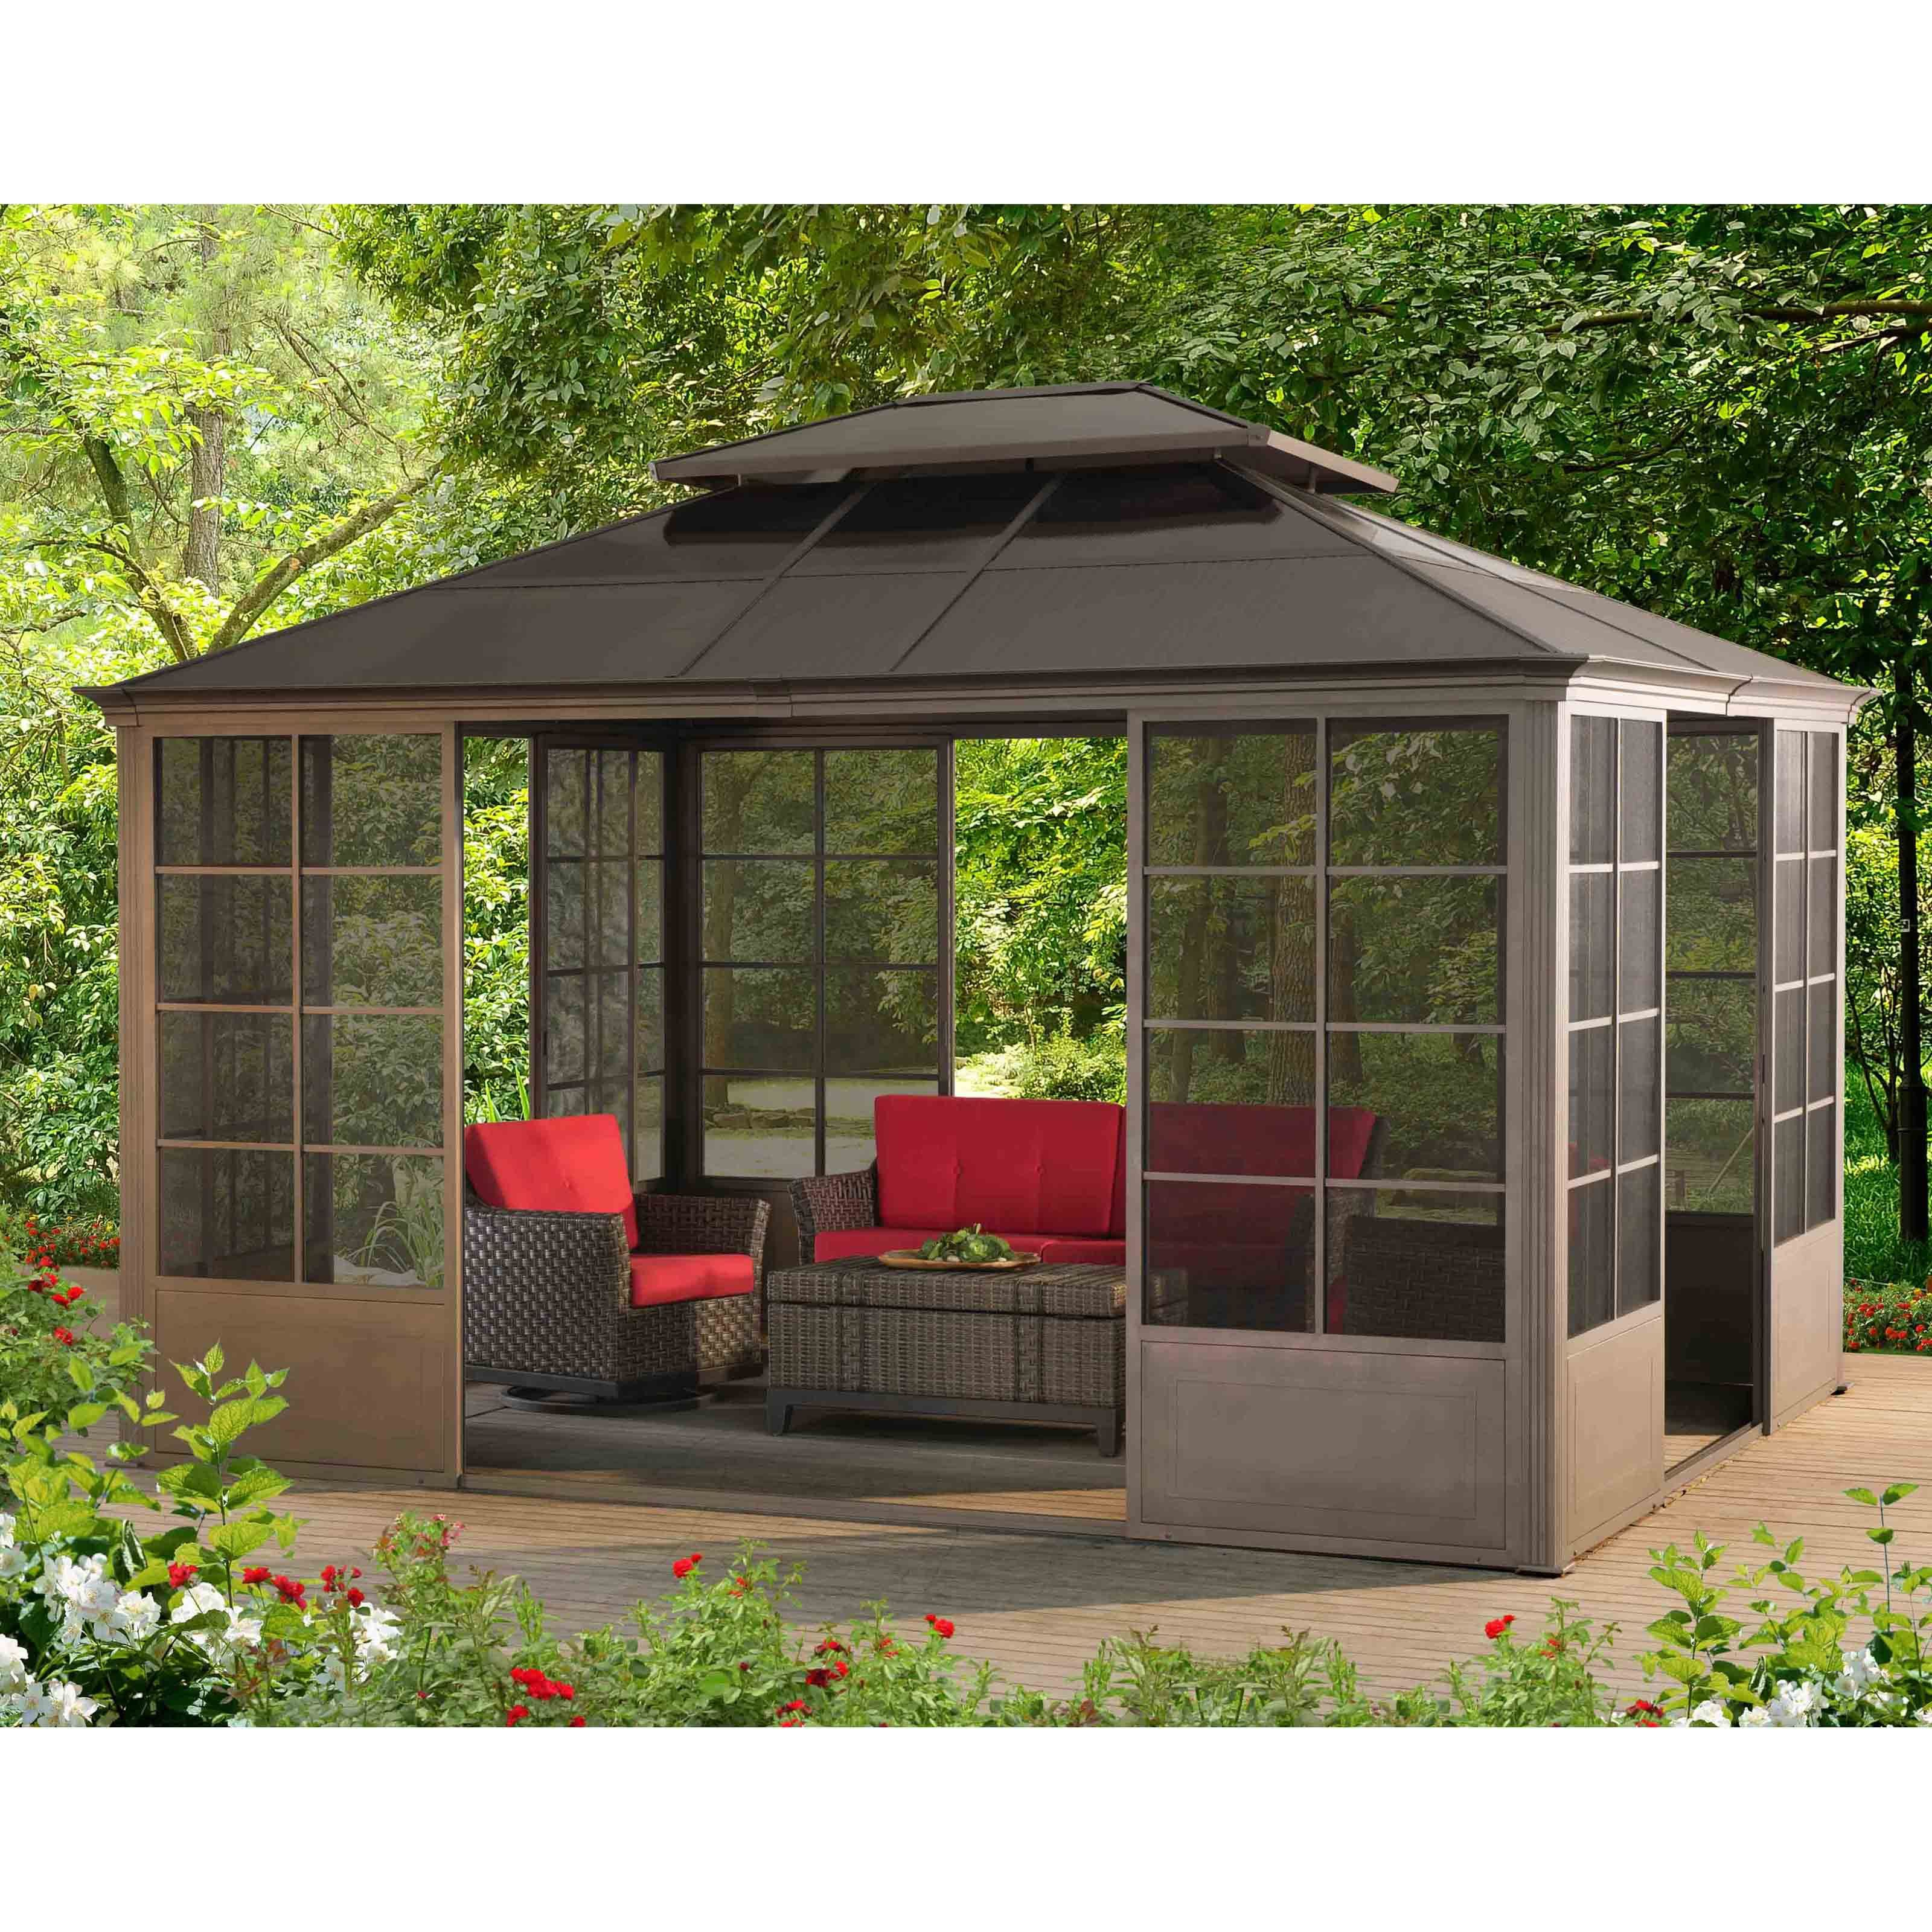 Sunjoy 14 x 9 ft Conner Screen House Gazebo